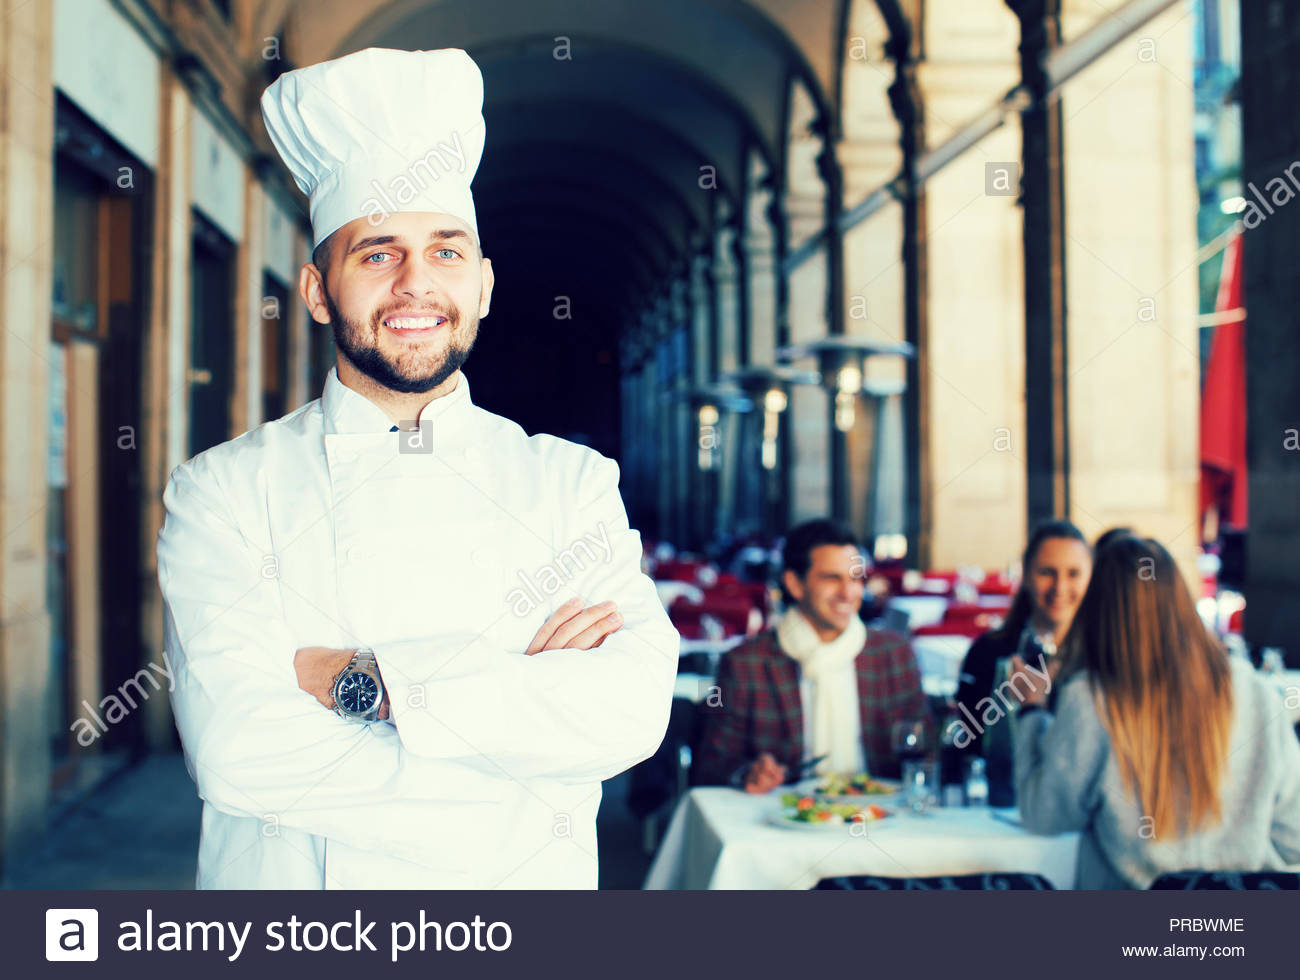 Portrait of glad professional chef on background with restaurant 1300x980